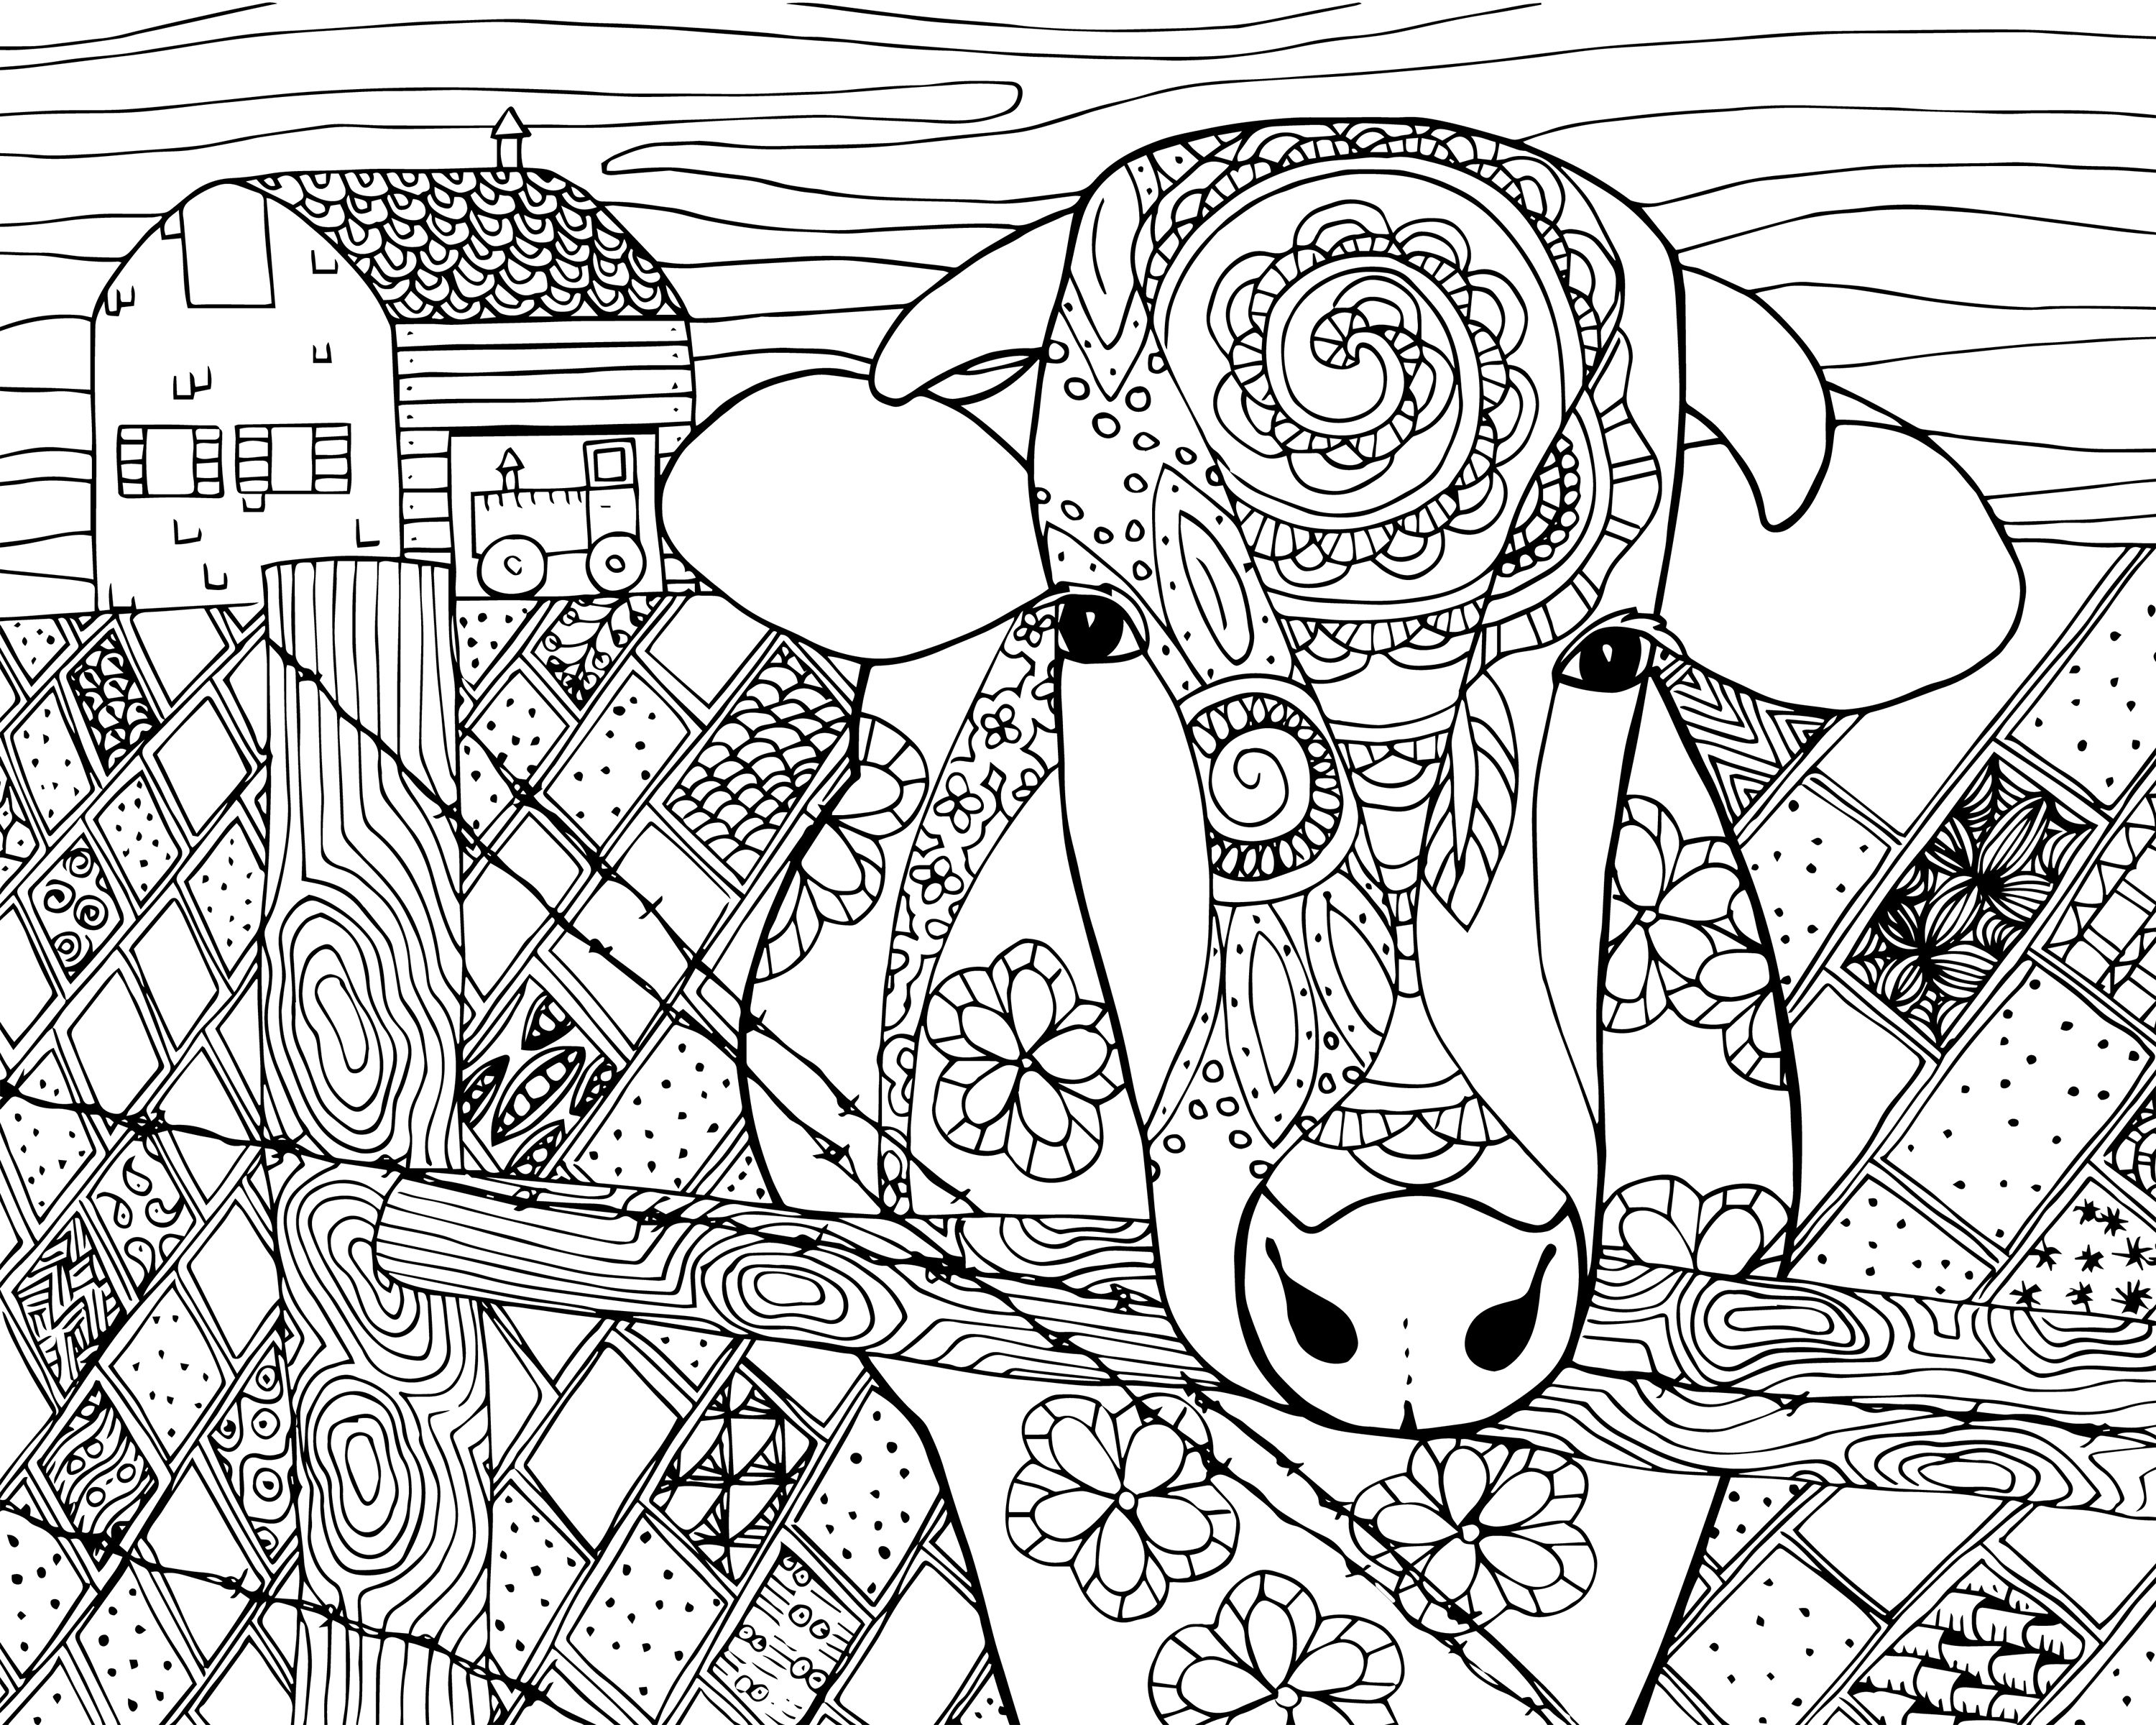 Free coloring pages for adults abstract - Free Coloring Pages Adults Art And Abstract Category Image 62